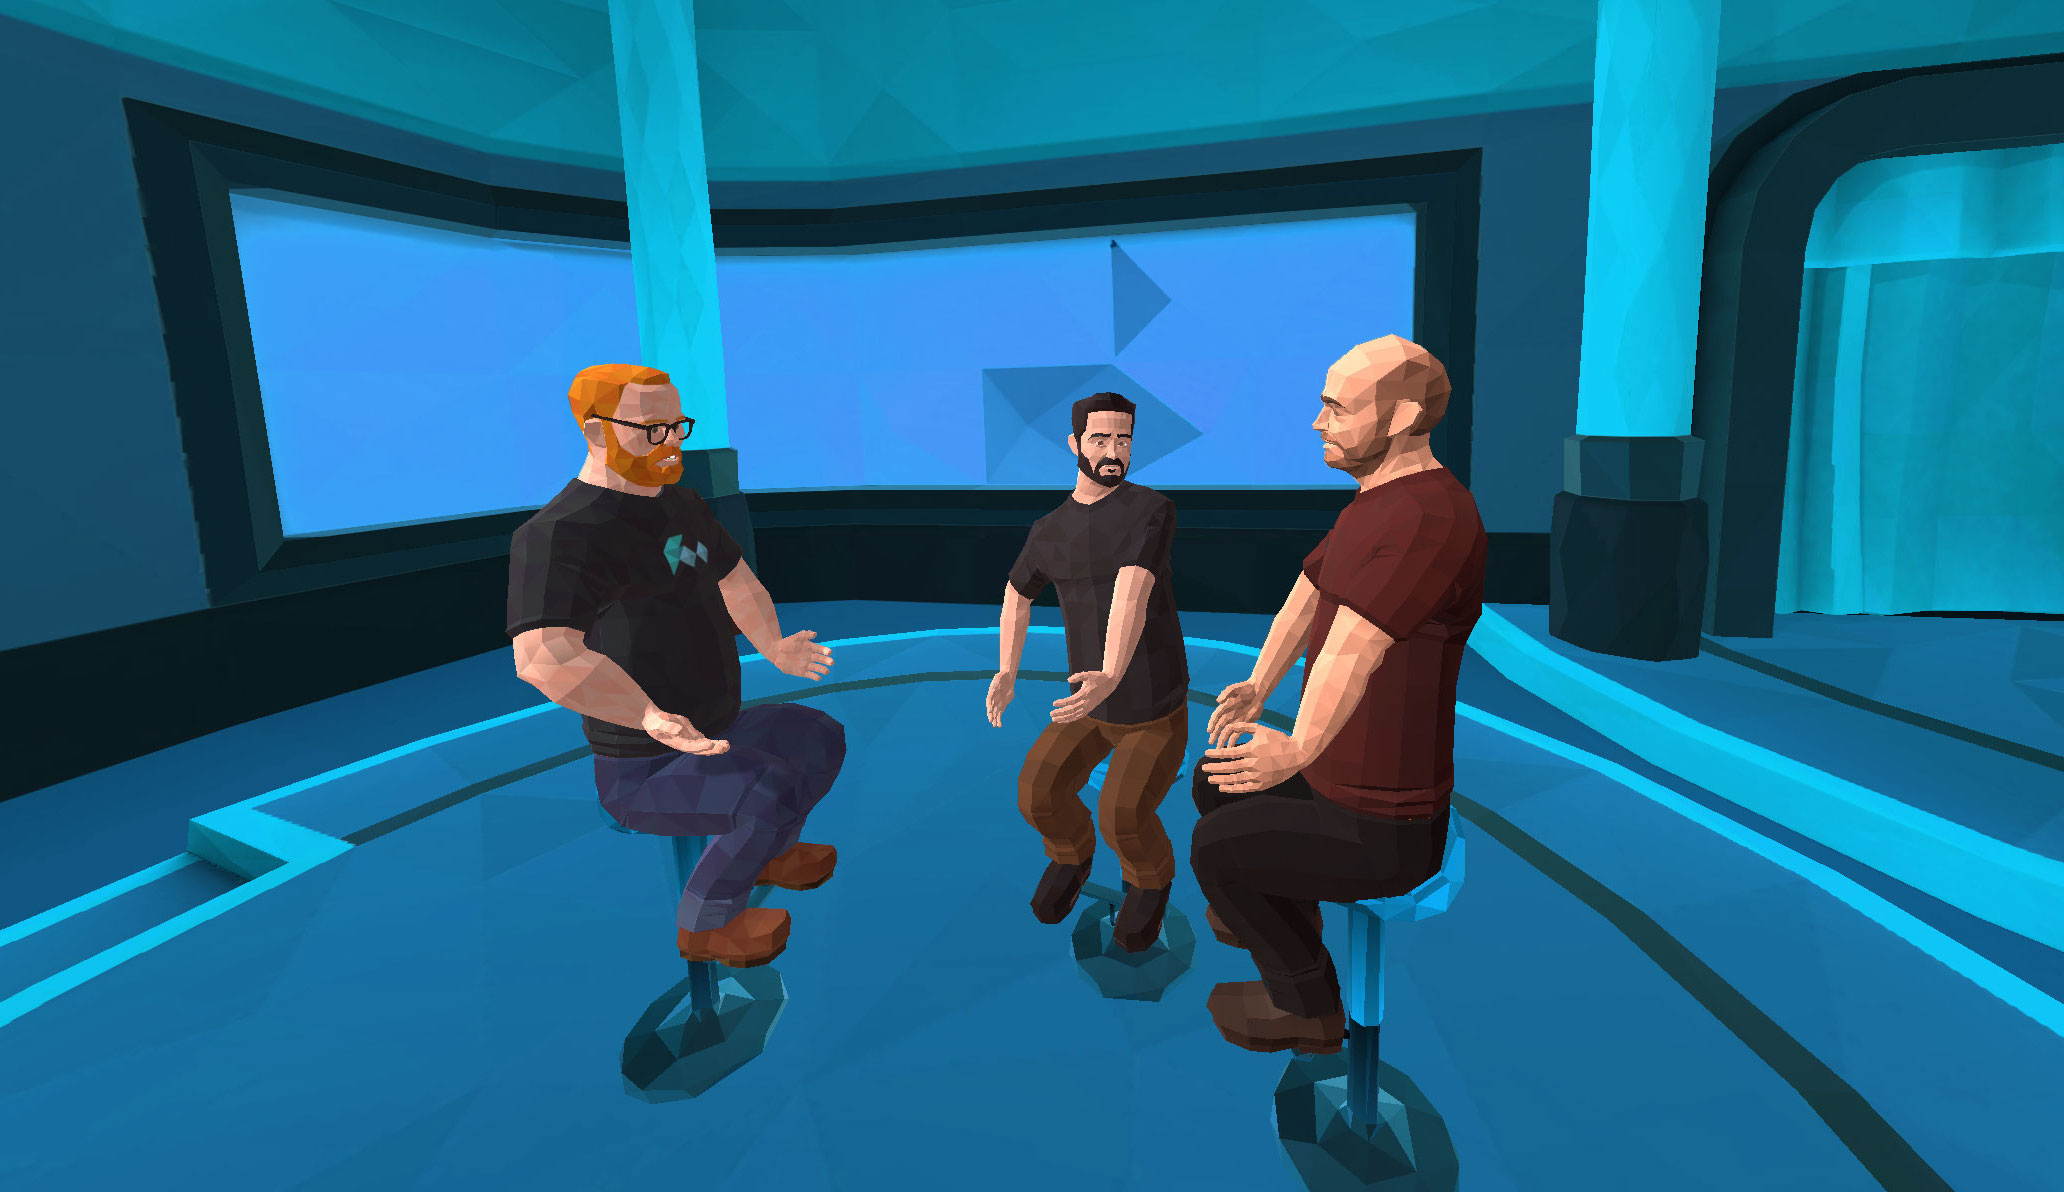 The Challenges and Rewards of Designing a VR World